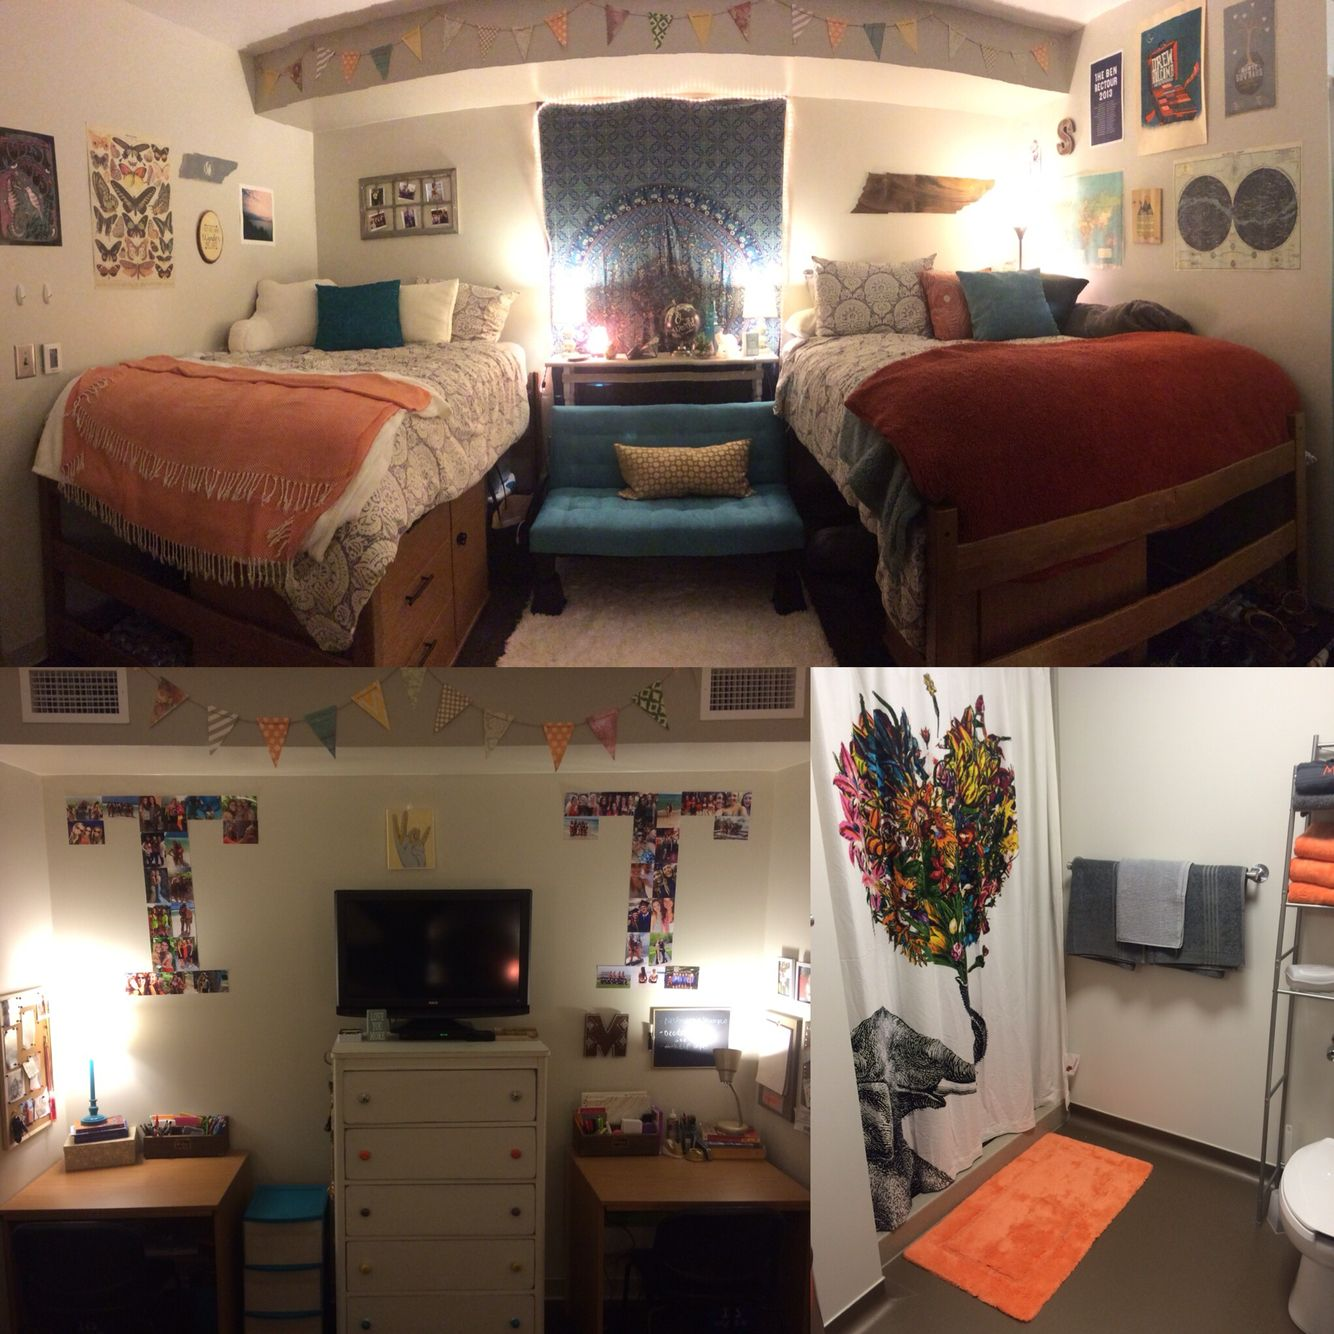 How To Make An Interesting Art Piece Using Tree Branches Ehow Dorm Room Inspiration Dorm Sweet Dorm College Decor